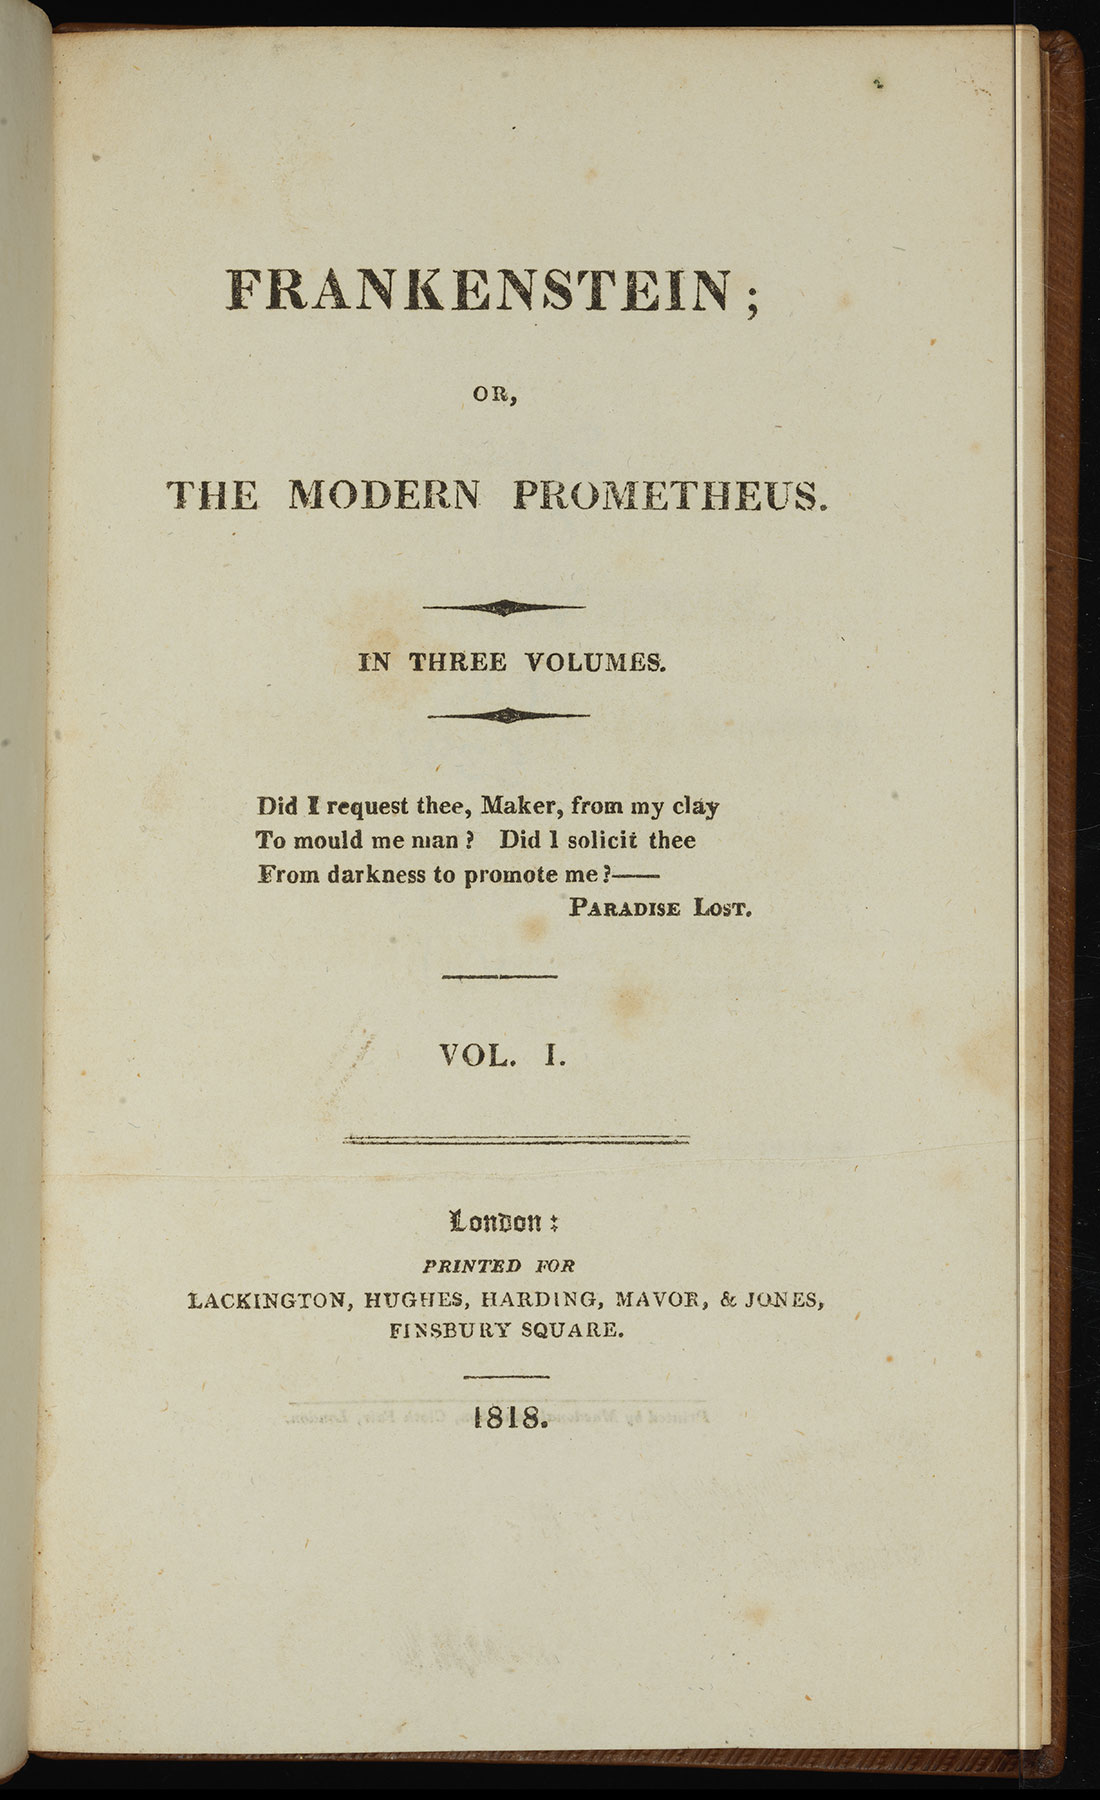 First Edition Of One The Most Influential Works European Literature And Taught Novel In Universities Mary Shelleys Frankenstein Enhances